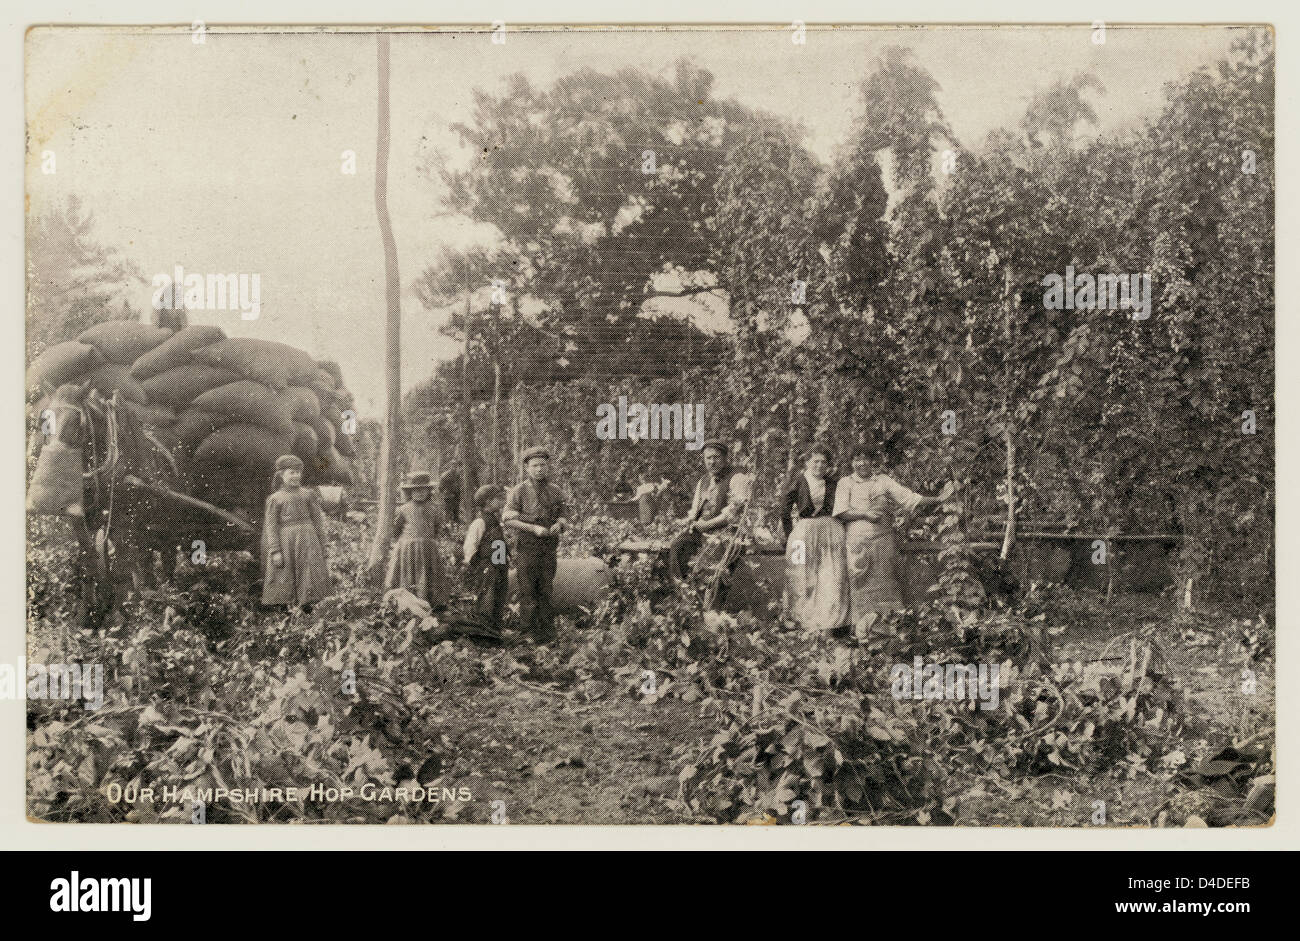 Hop pickers photo in Hampshire, posted in August 30 1911 - Stock Image